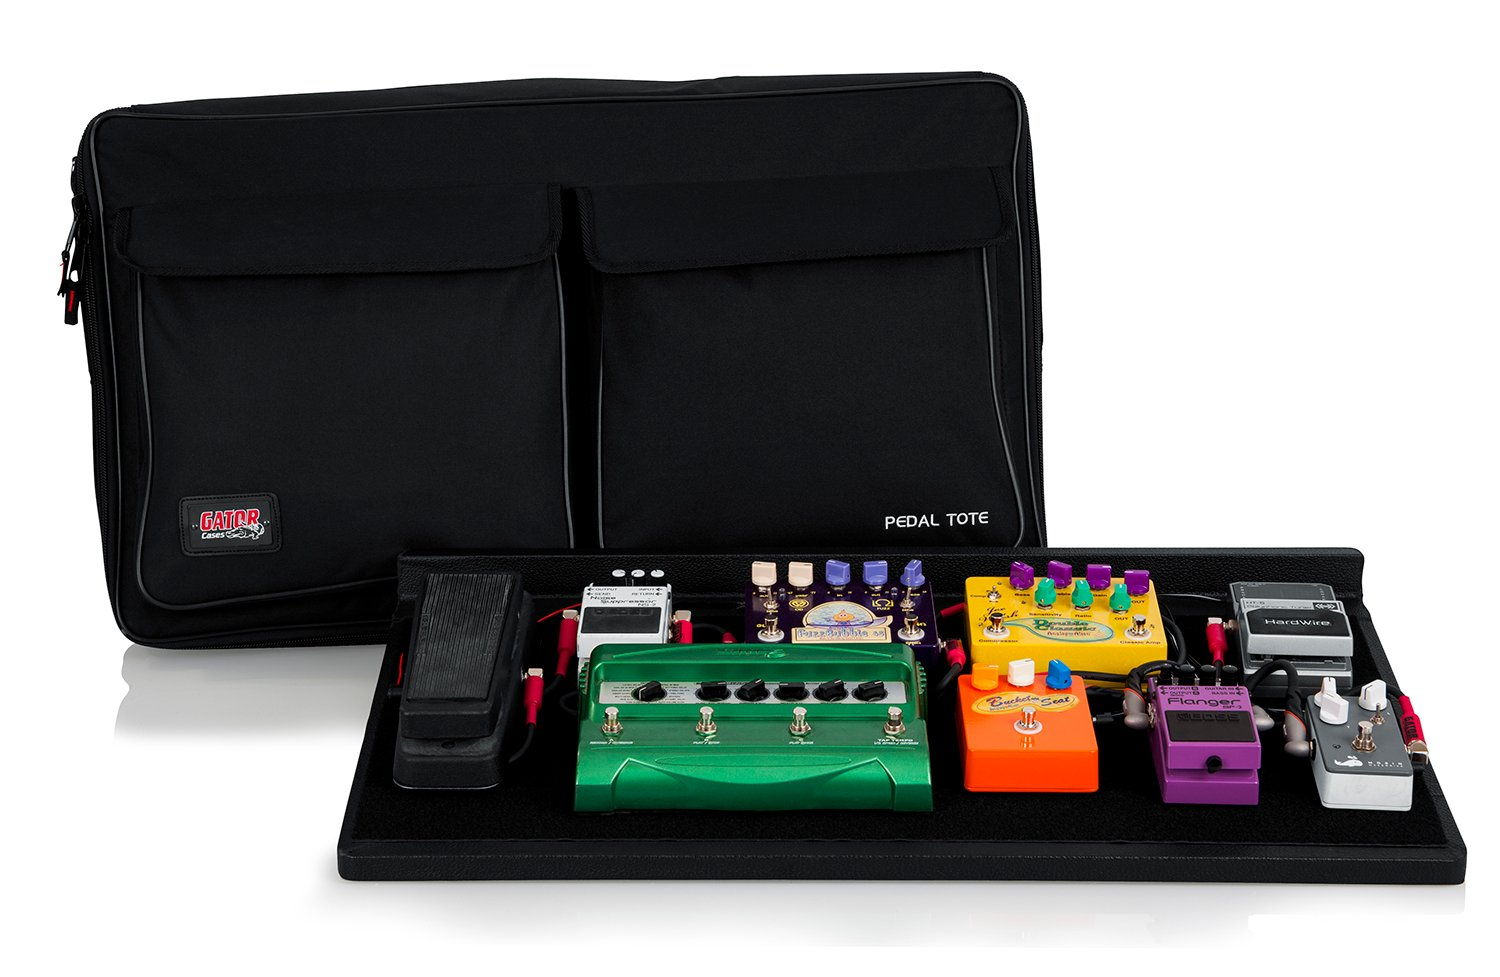 gator gpt pro pwr 30 x16 pedal board with gig bag and power supply full compass systems. Black Bedroom Furniture Sets. Home Design Ideas